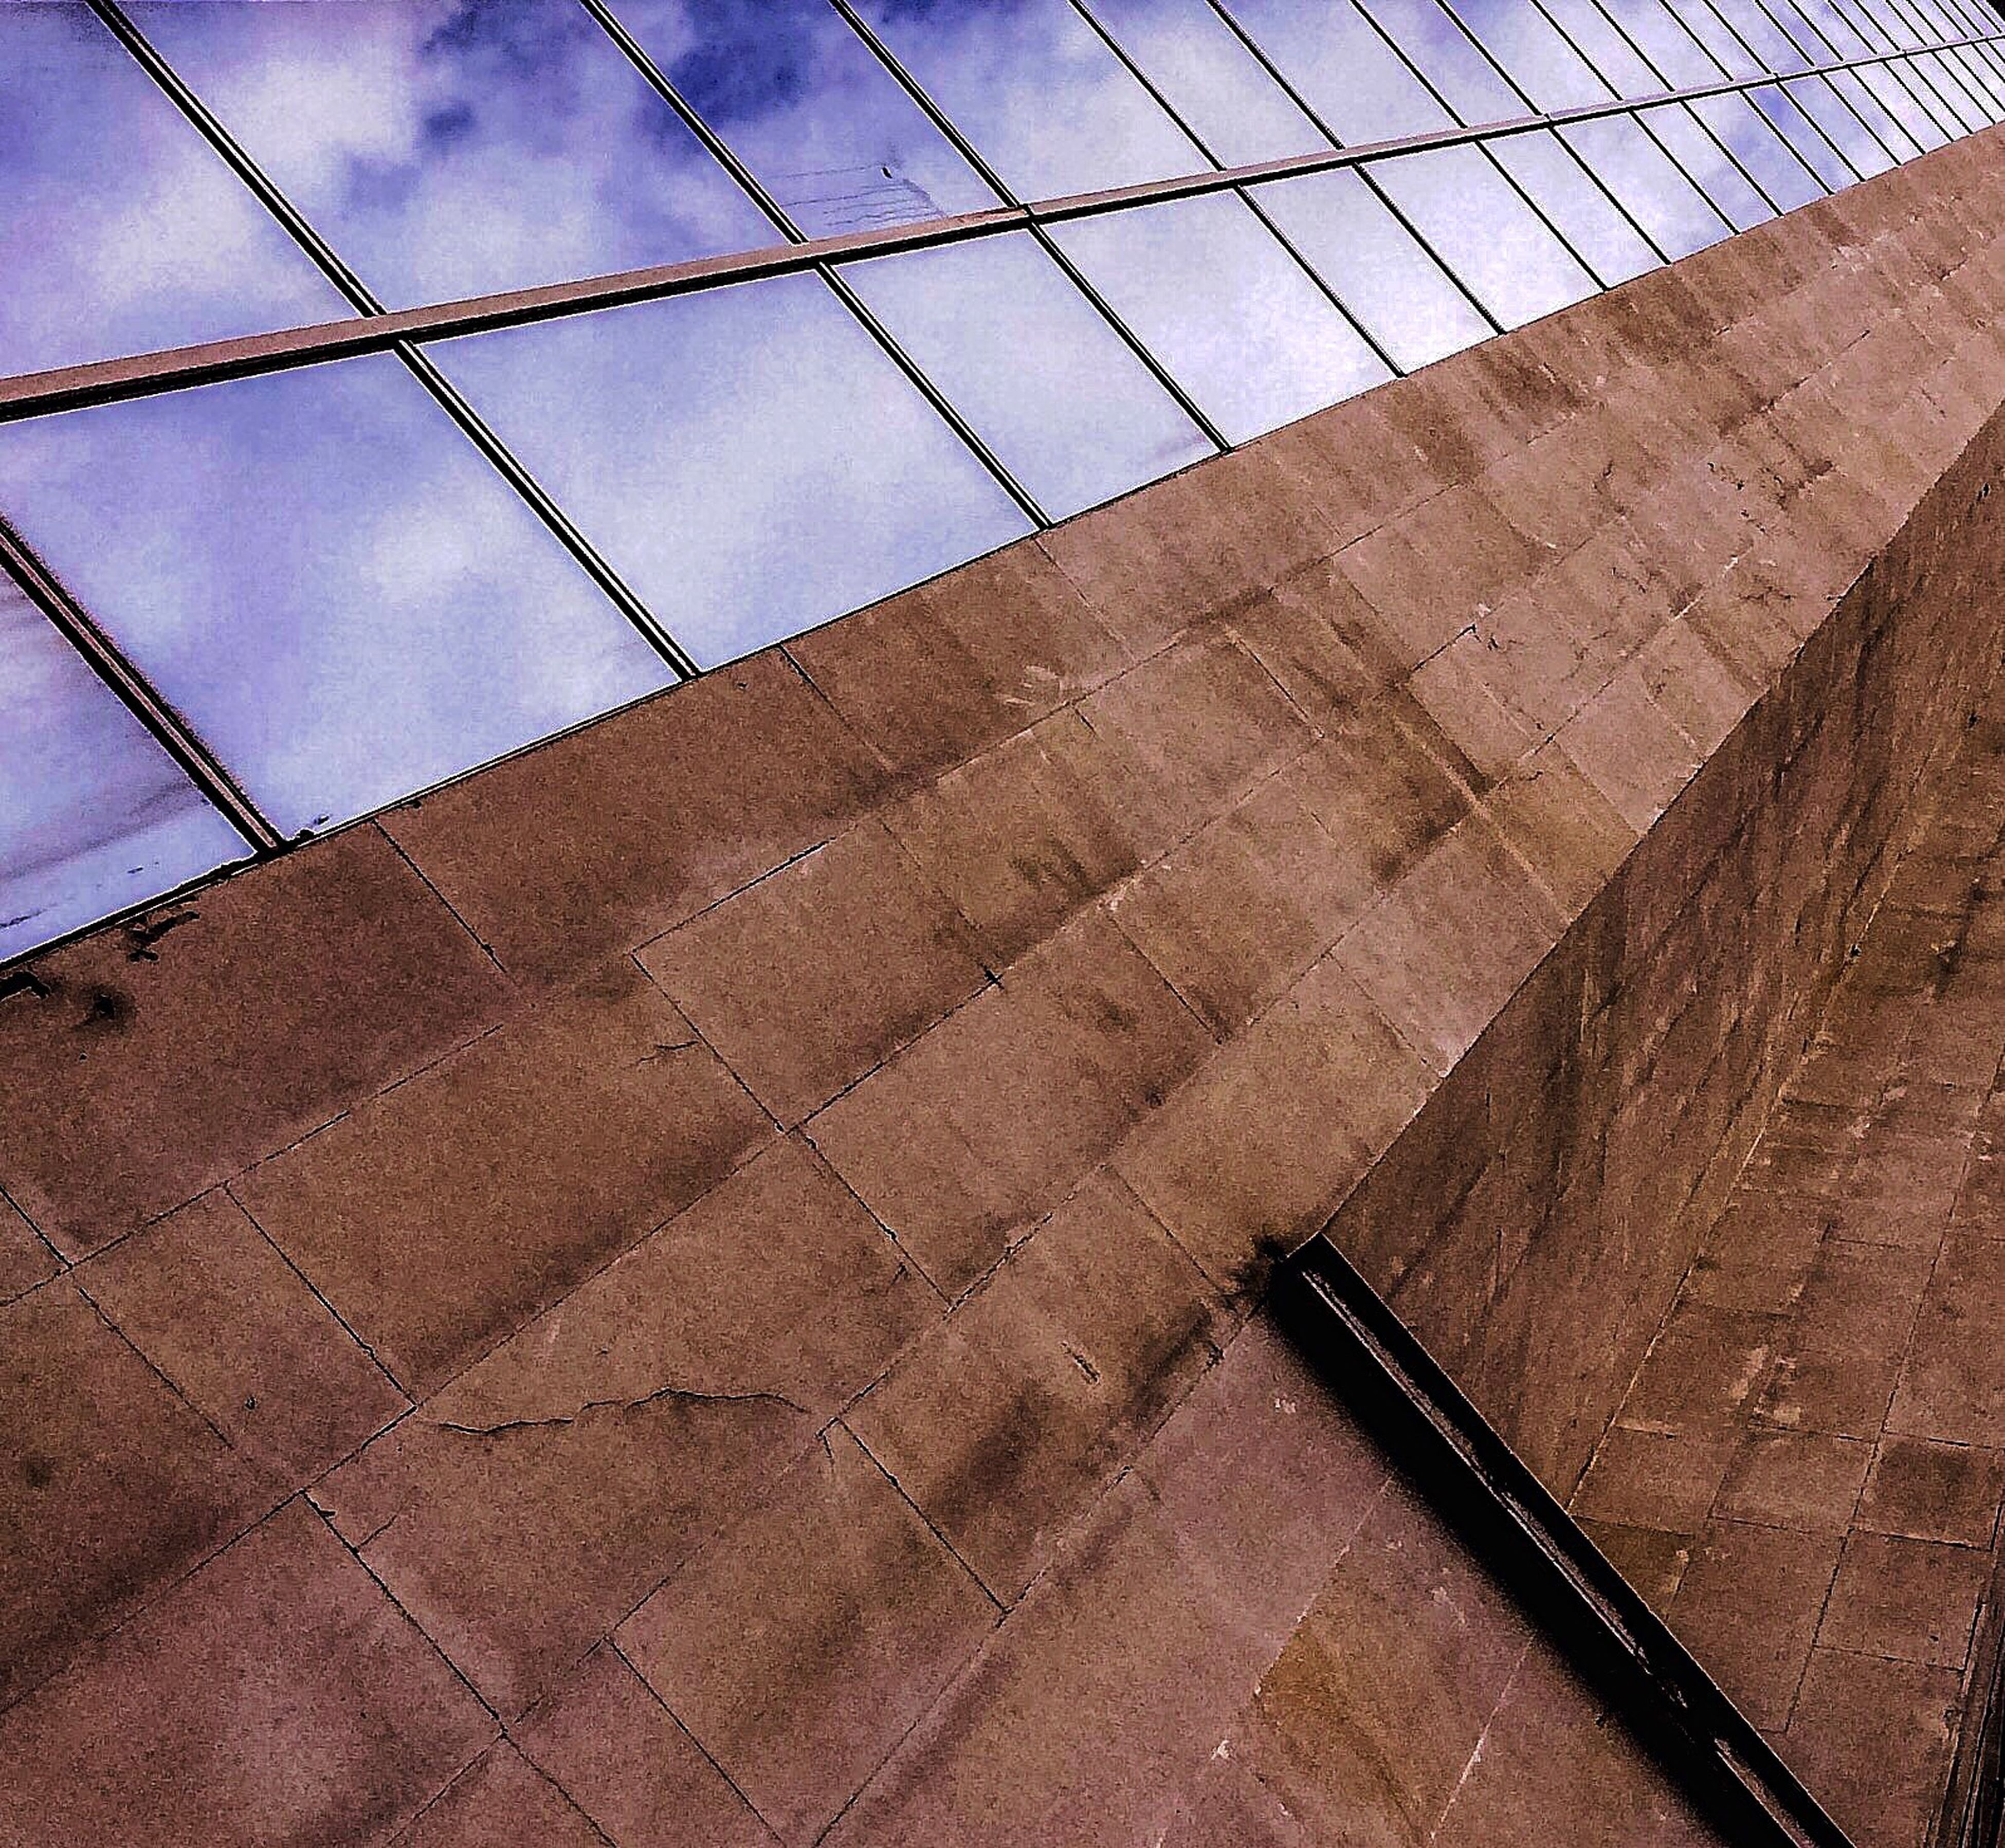 no people, full frame, low angle view, outdoors, backgrounds, built structure, day, architecture, close-up, sky